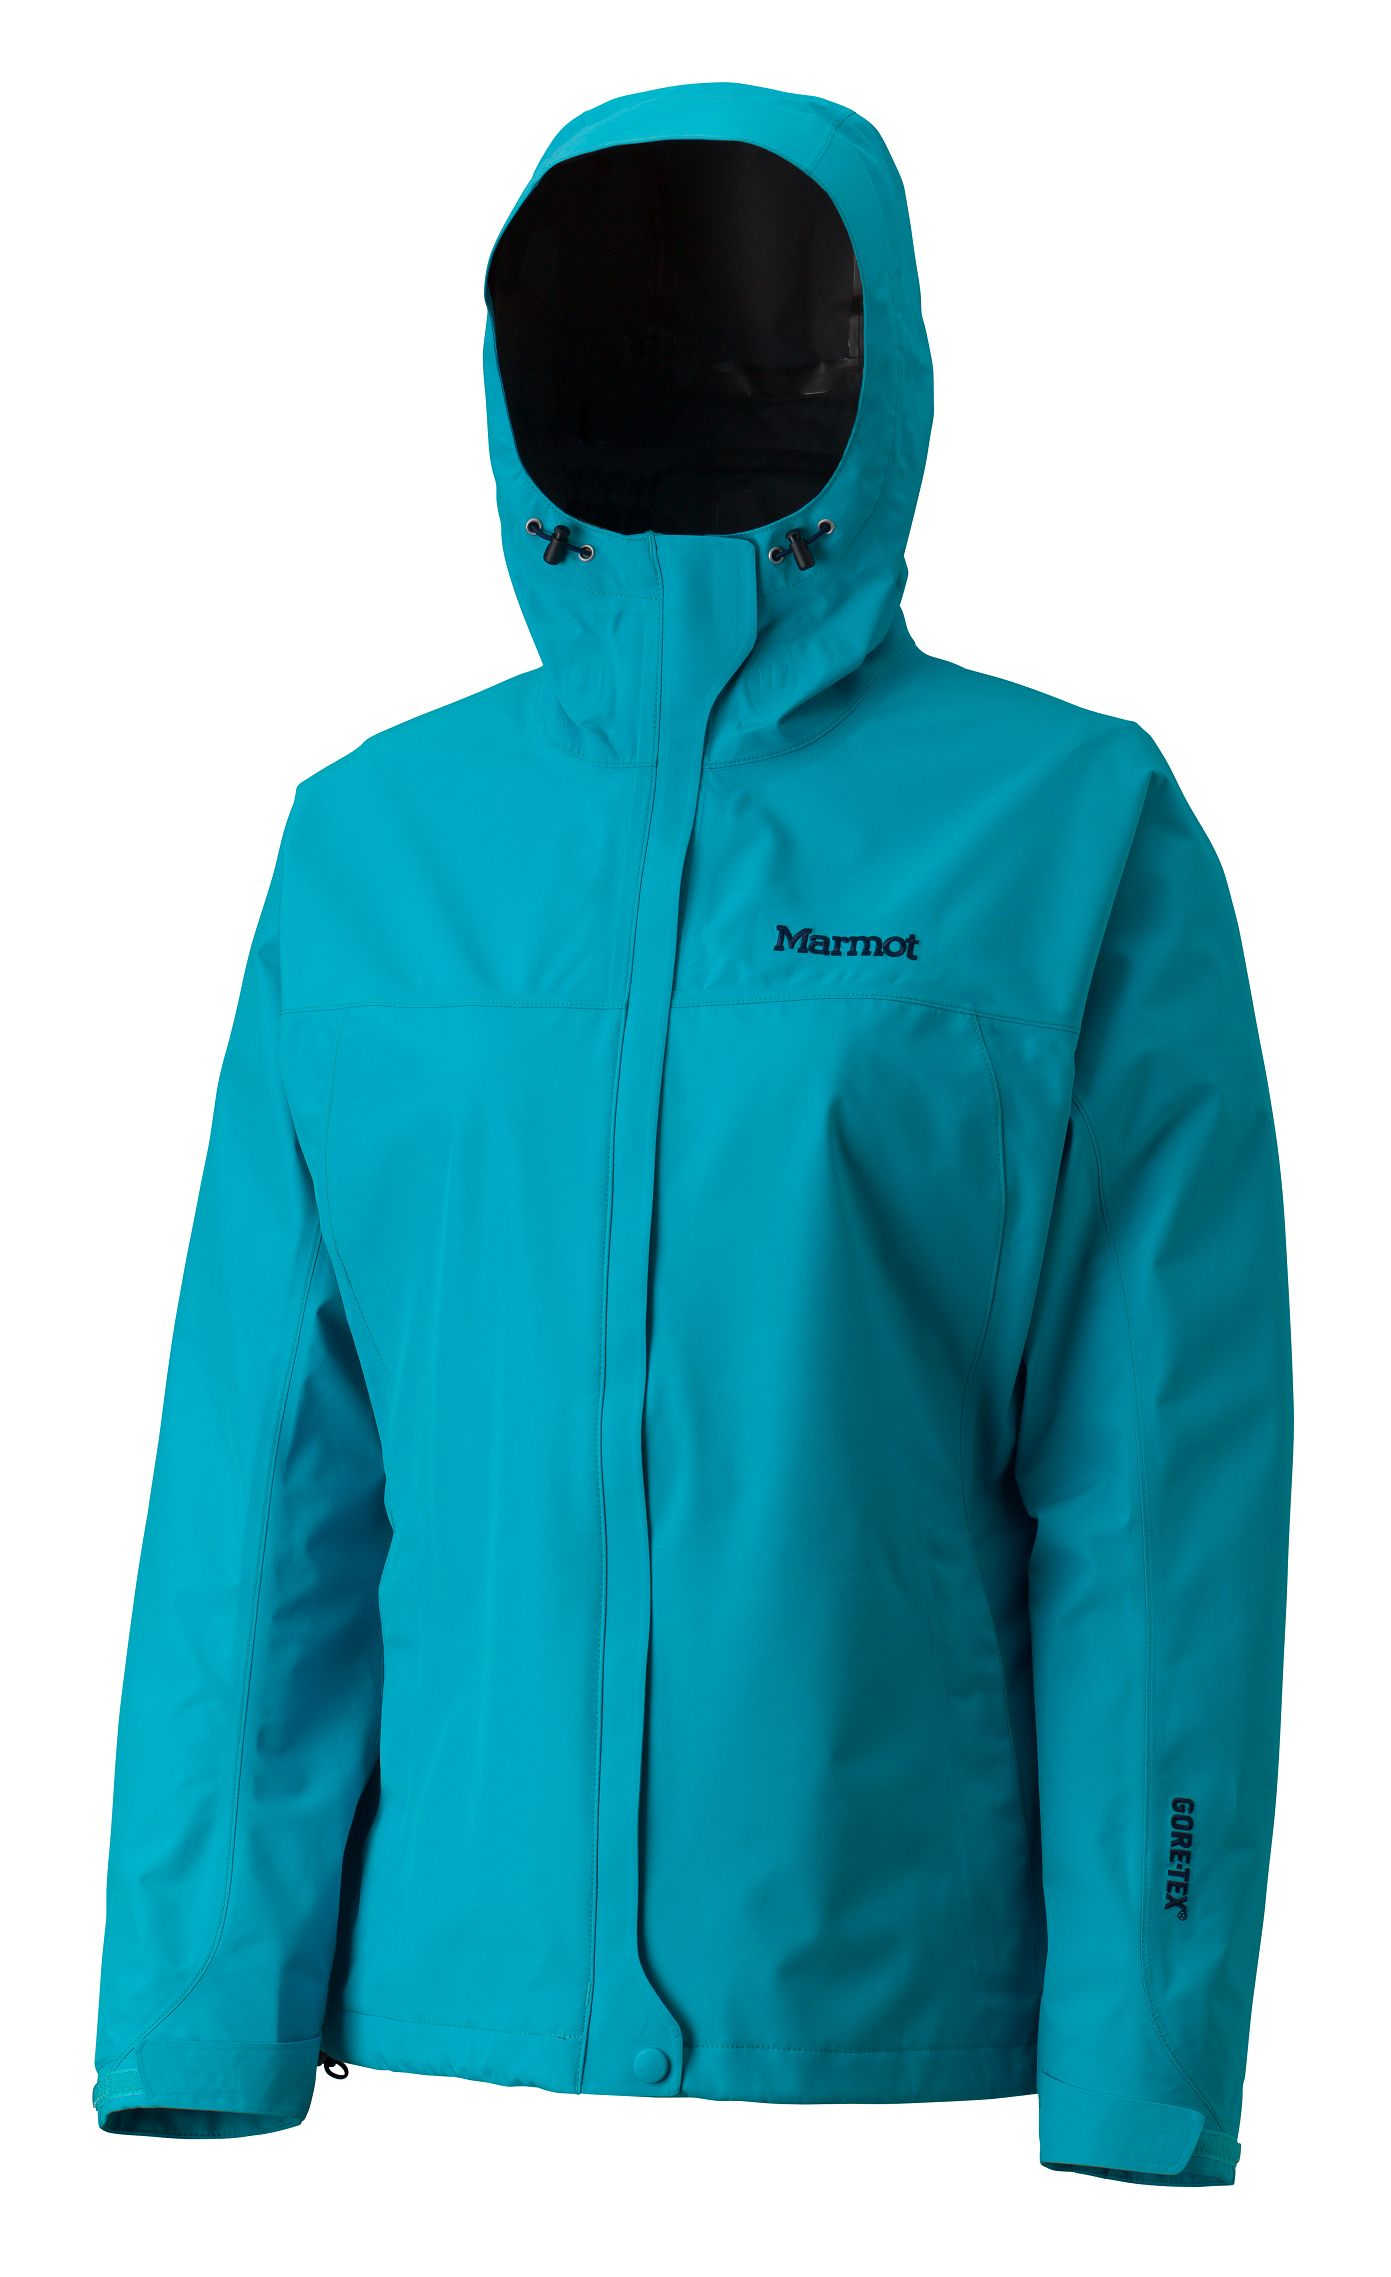 Marmot Wm's Minimalist Jacket Sea Breeze-30